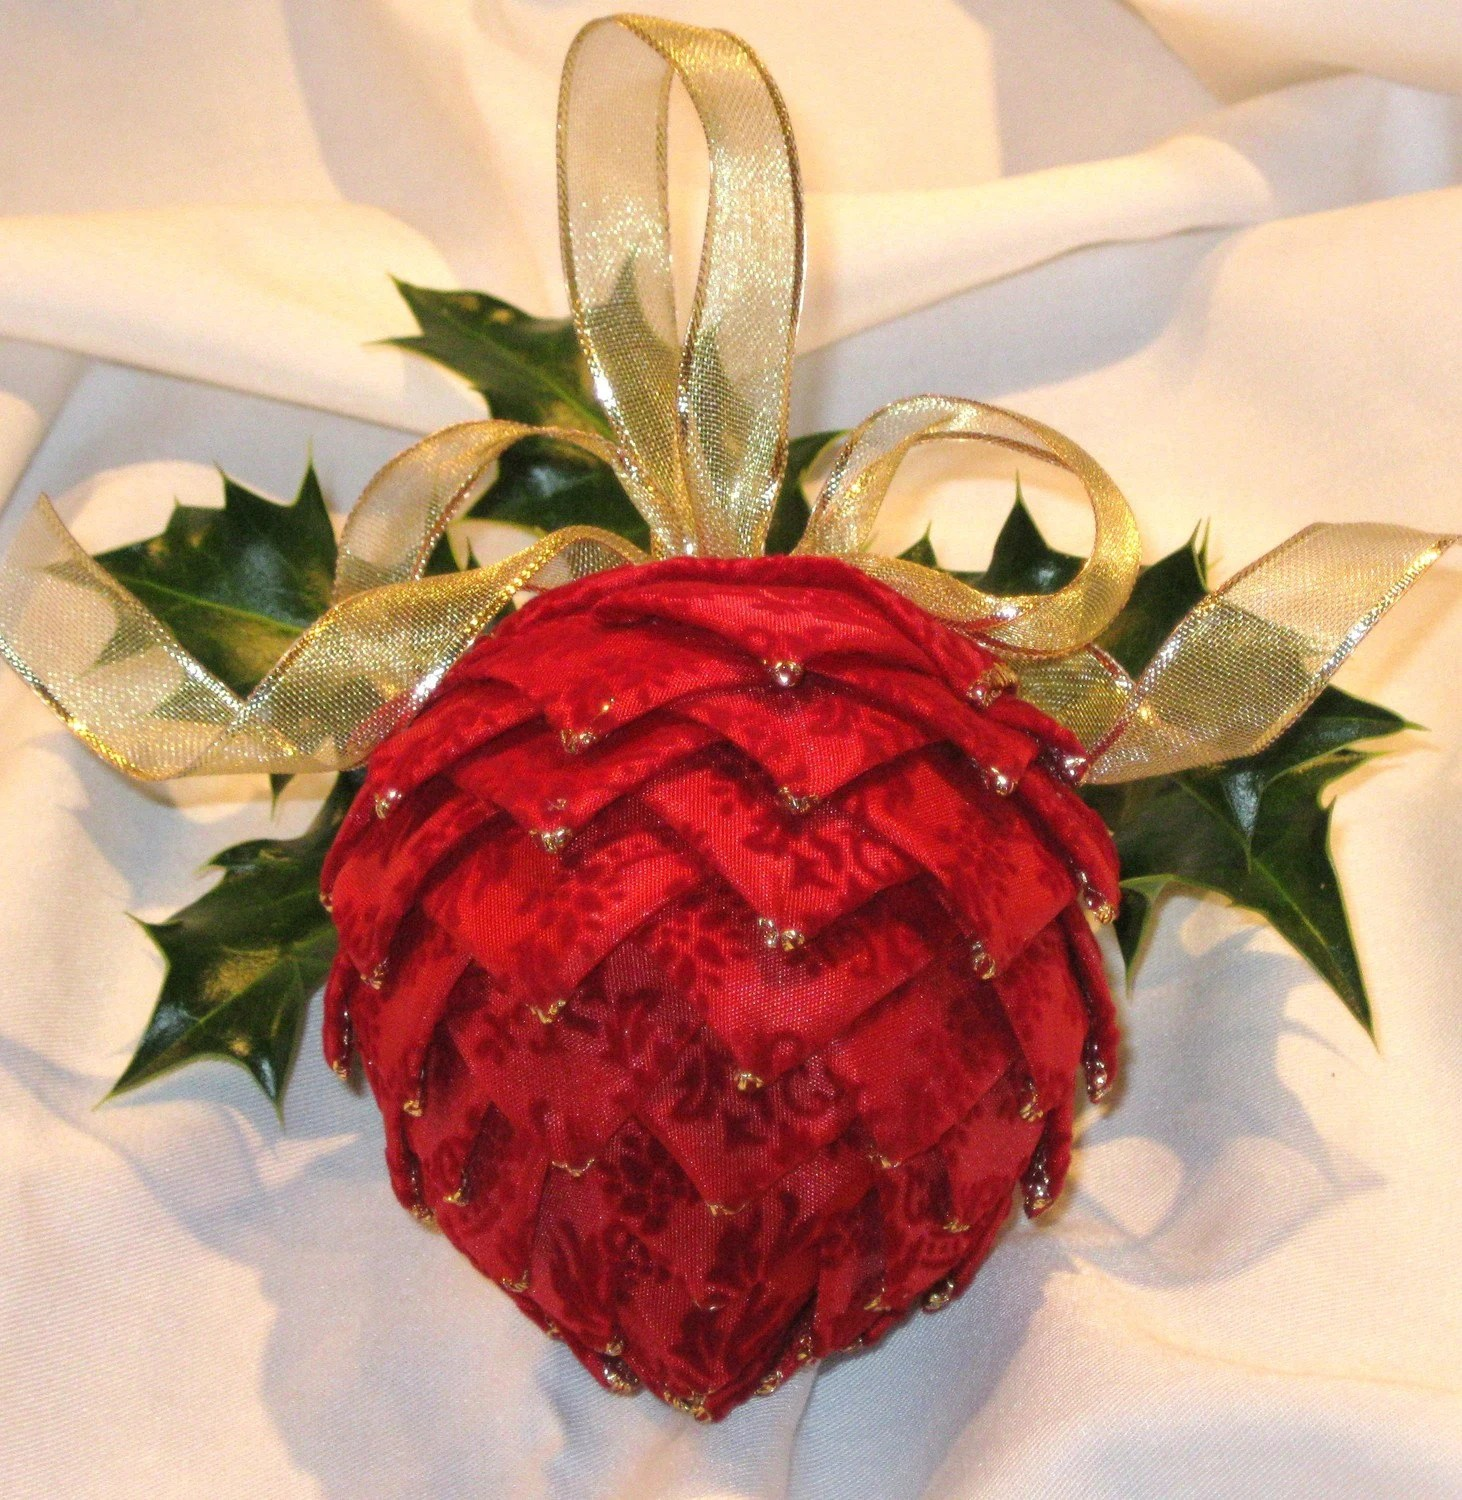 pine cone, ornament, hostess gift, red, gold, Christmas, decoration, wedding, party favor, reception decoration, pom pom pine cone